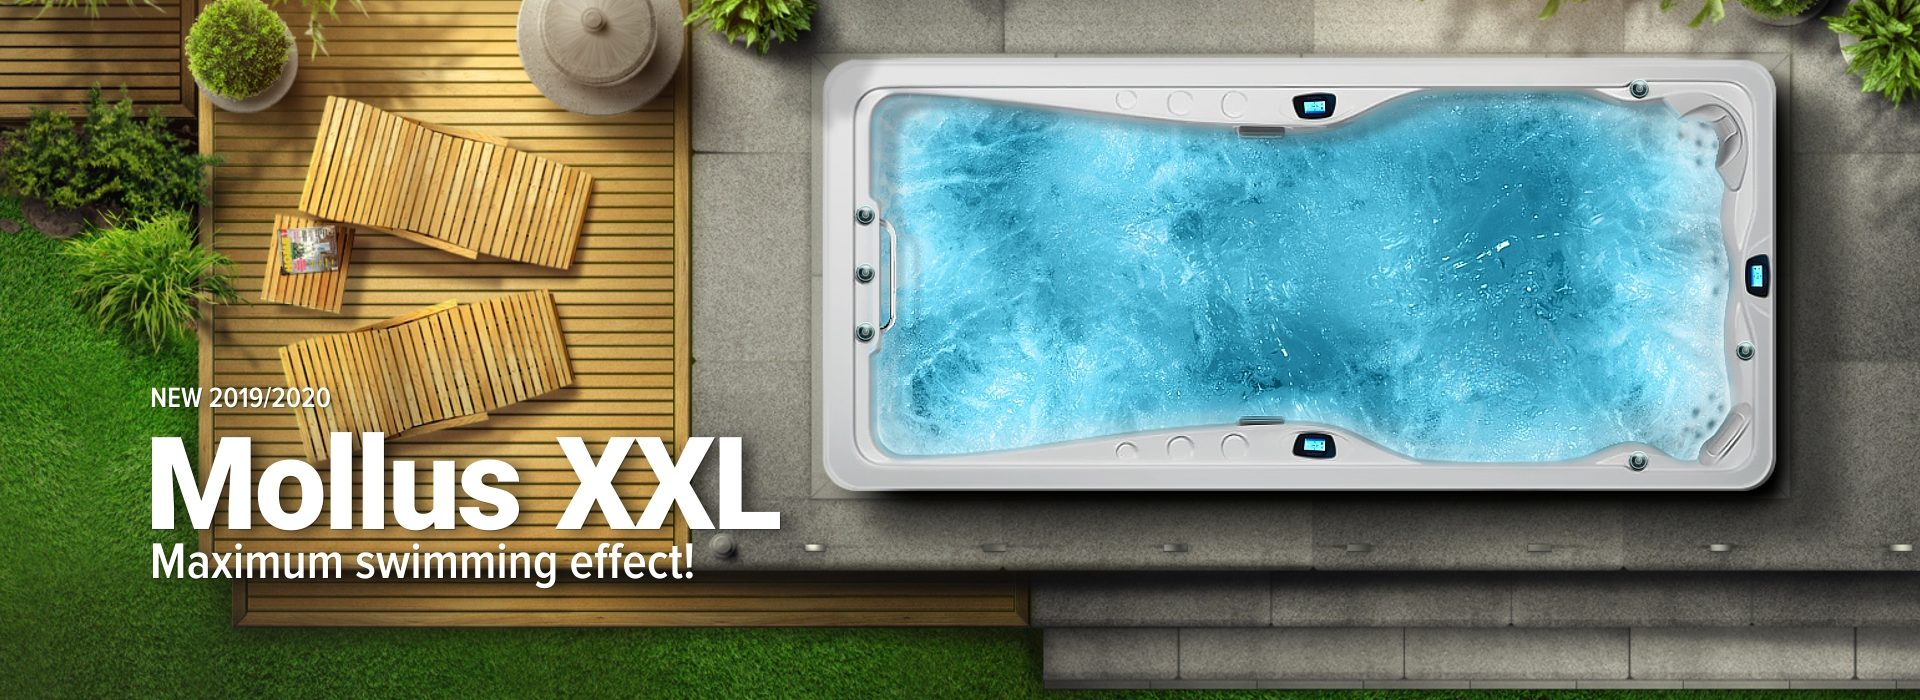 Whirlpool hot tubs Spa Studio - New swim spa 2019/2020: Mollus XXL